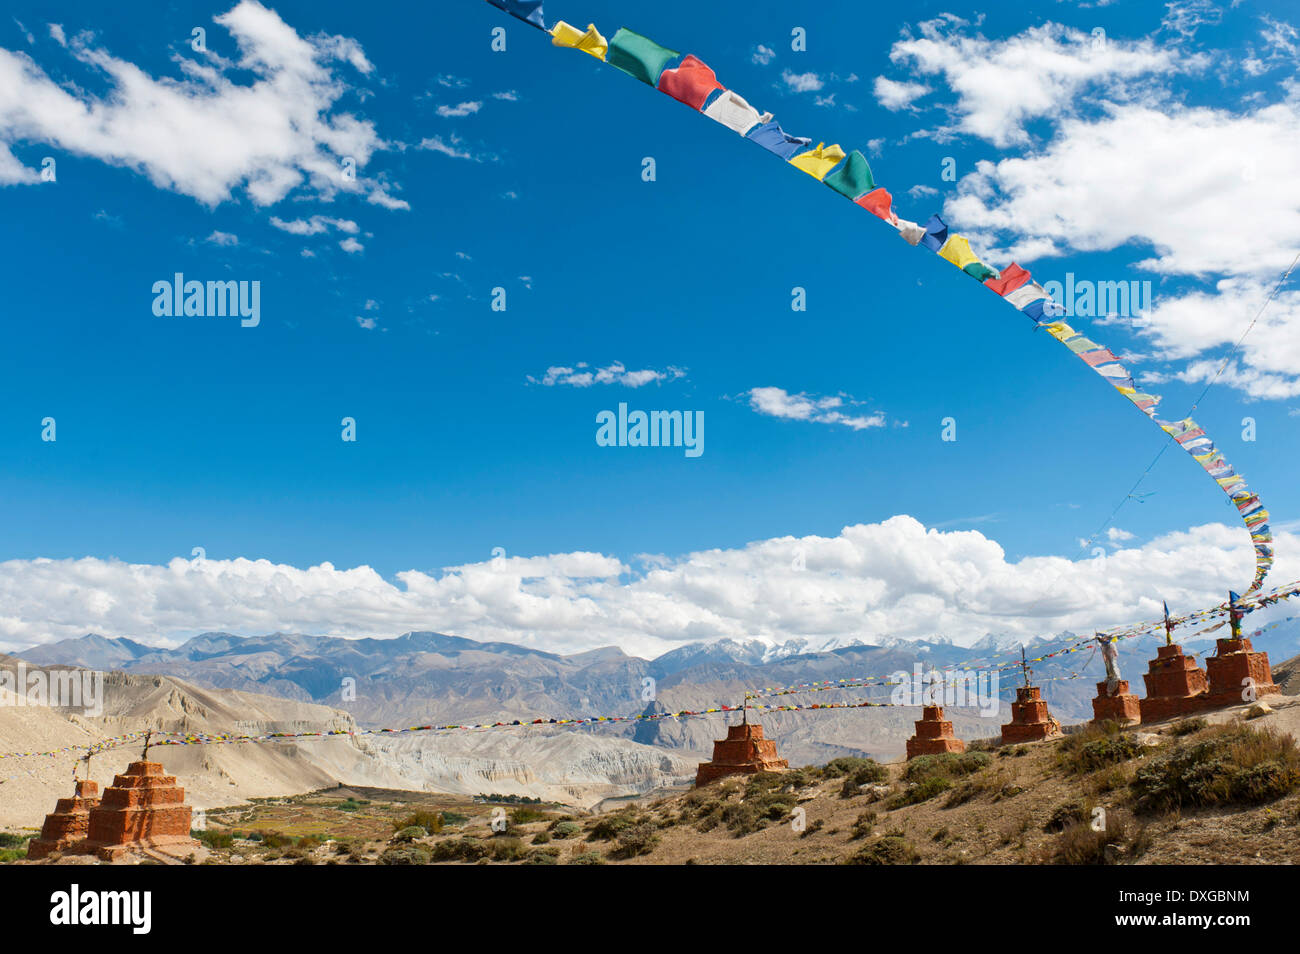 Stupas and prayer flags, chortens in a row in a mountain landscape, Ghar Gompa Monastery, Lo Gekar, Upper Mustang, Lo, Himalayas - Stock Image